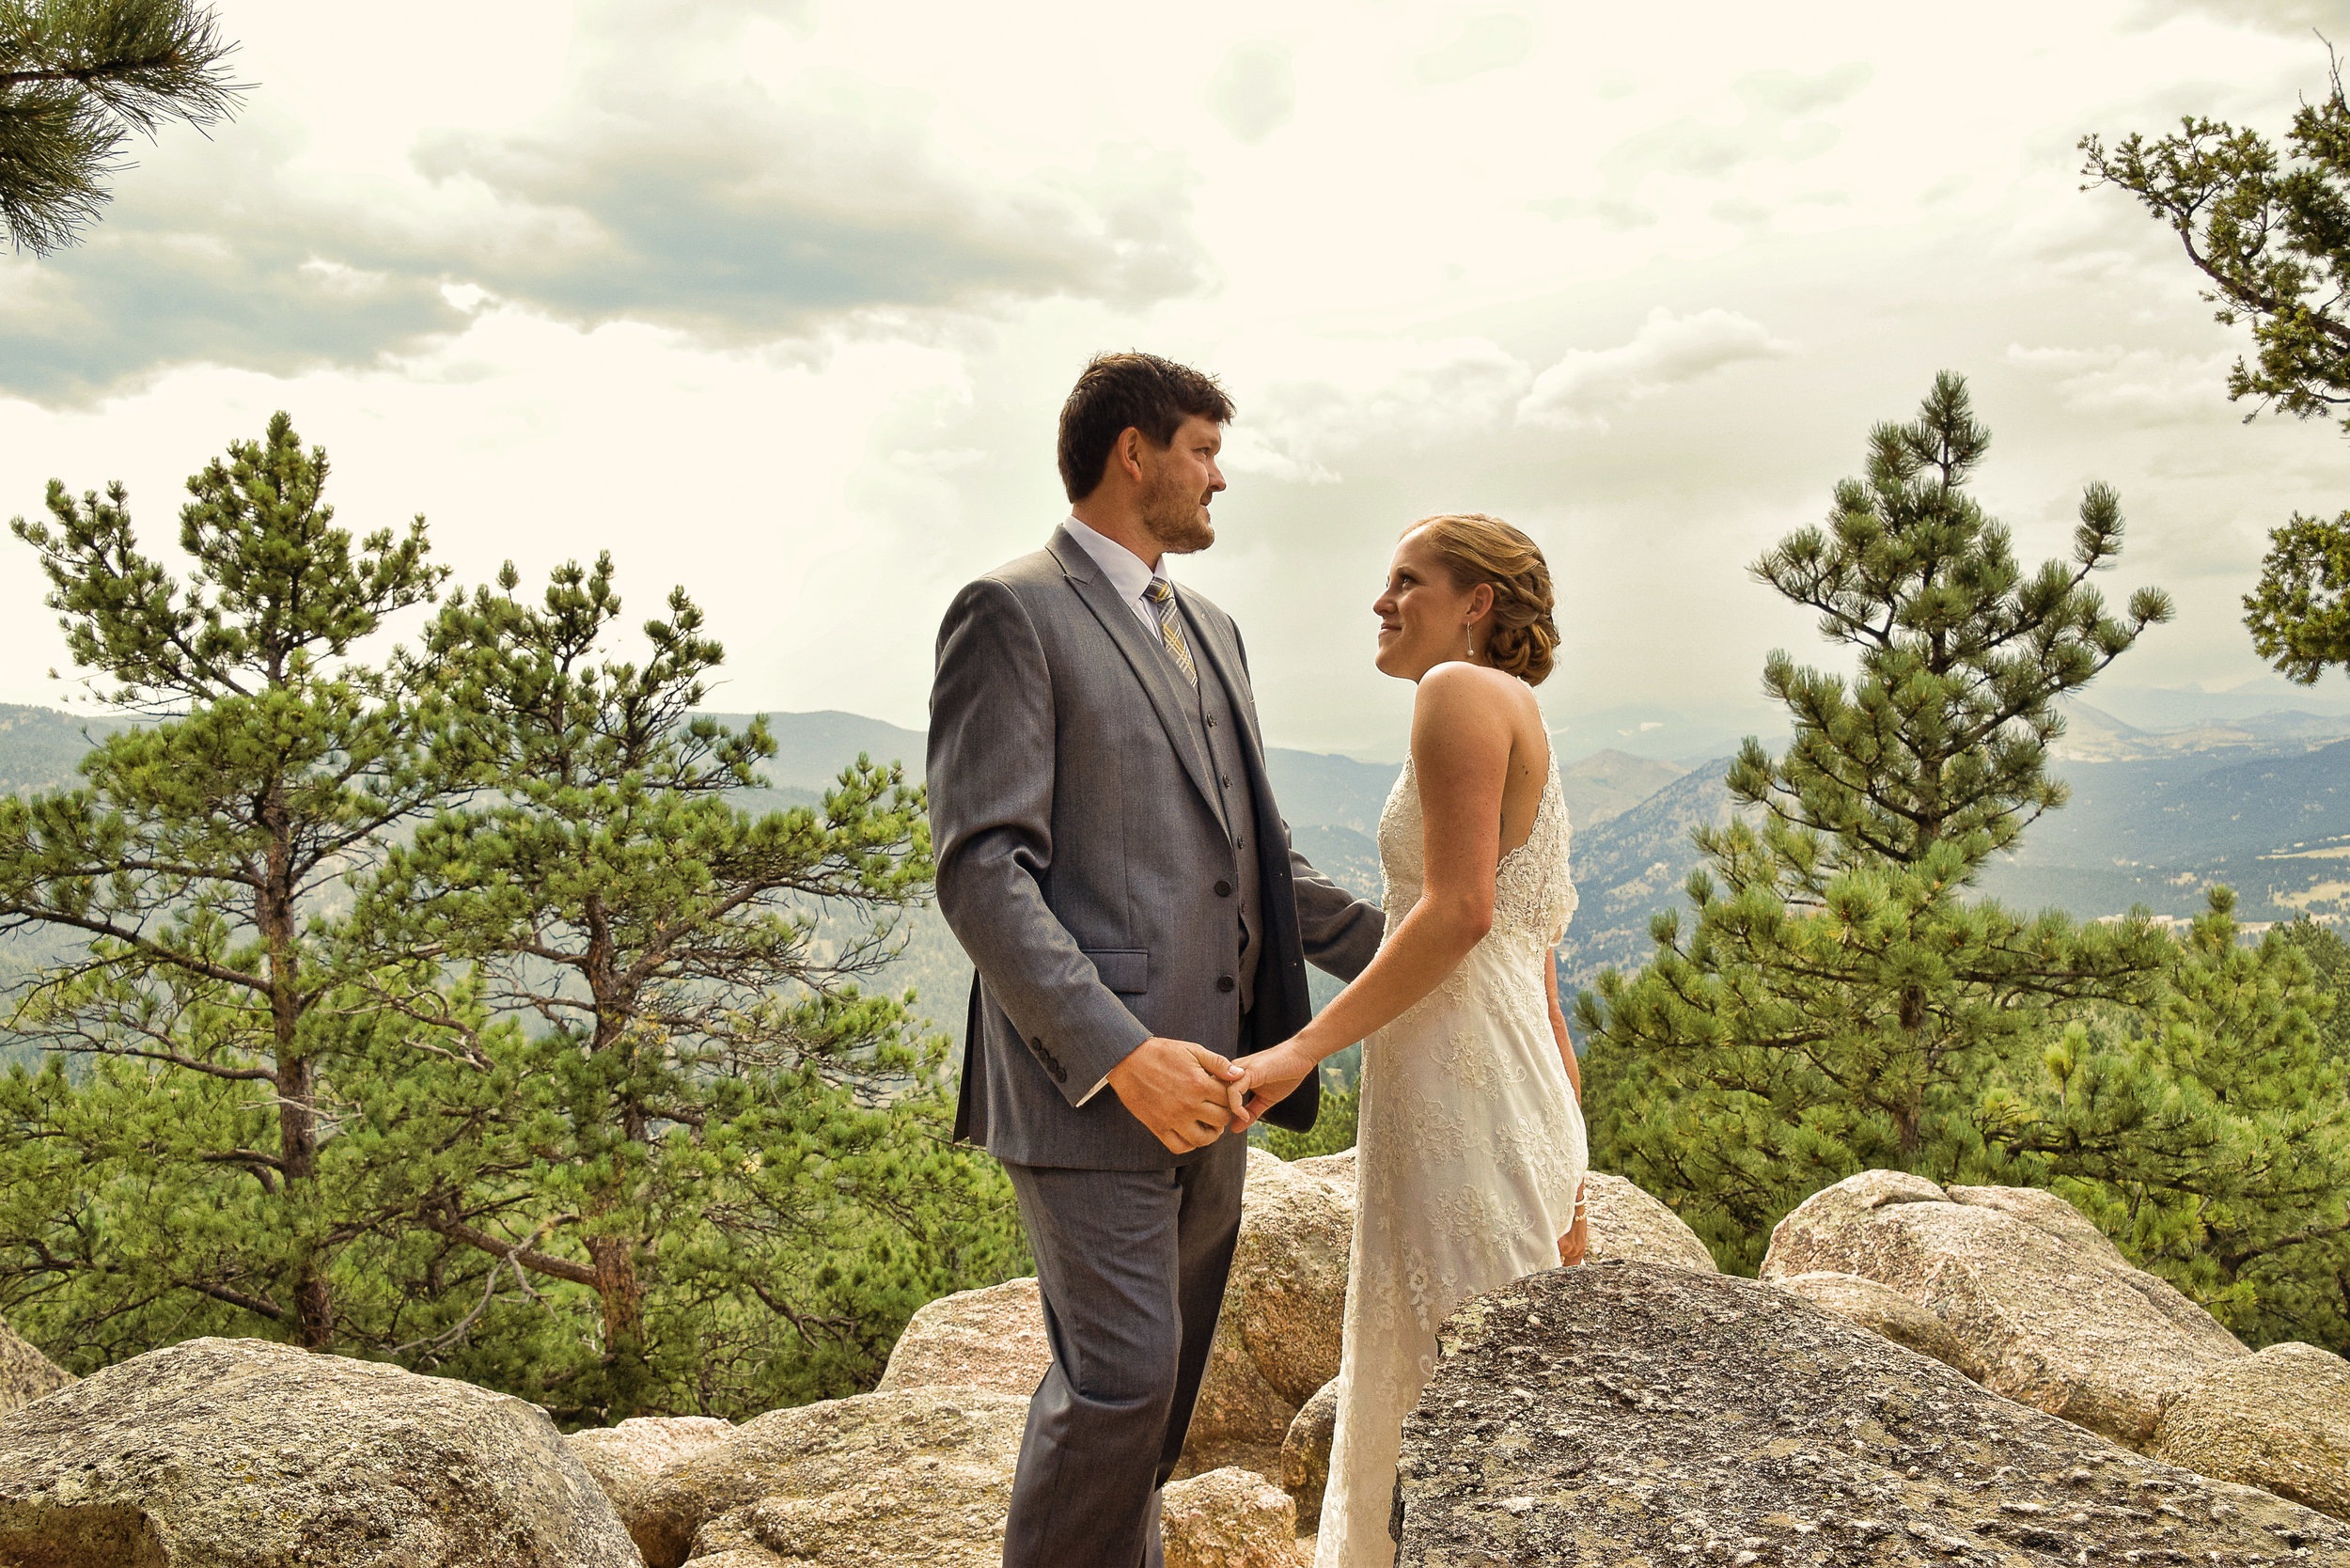 Candid shot of bride and groom in mountains.